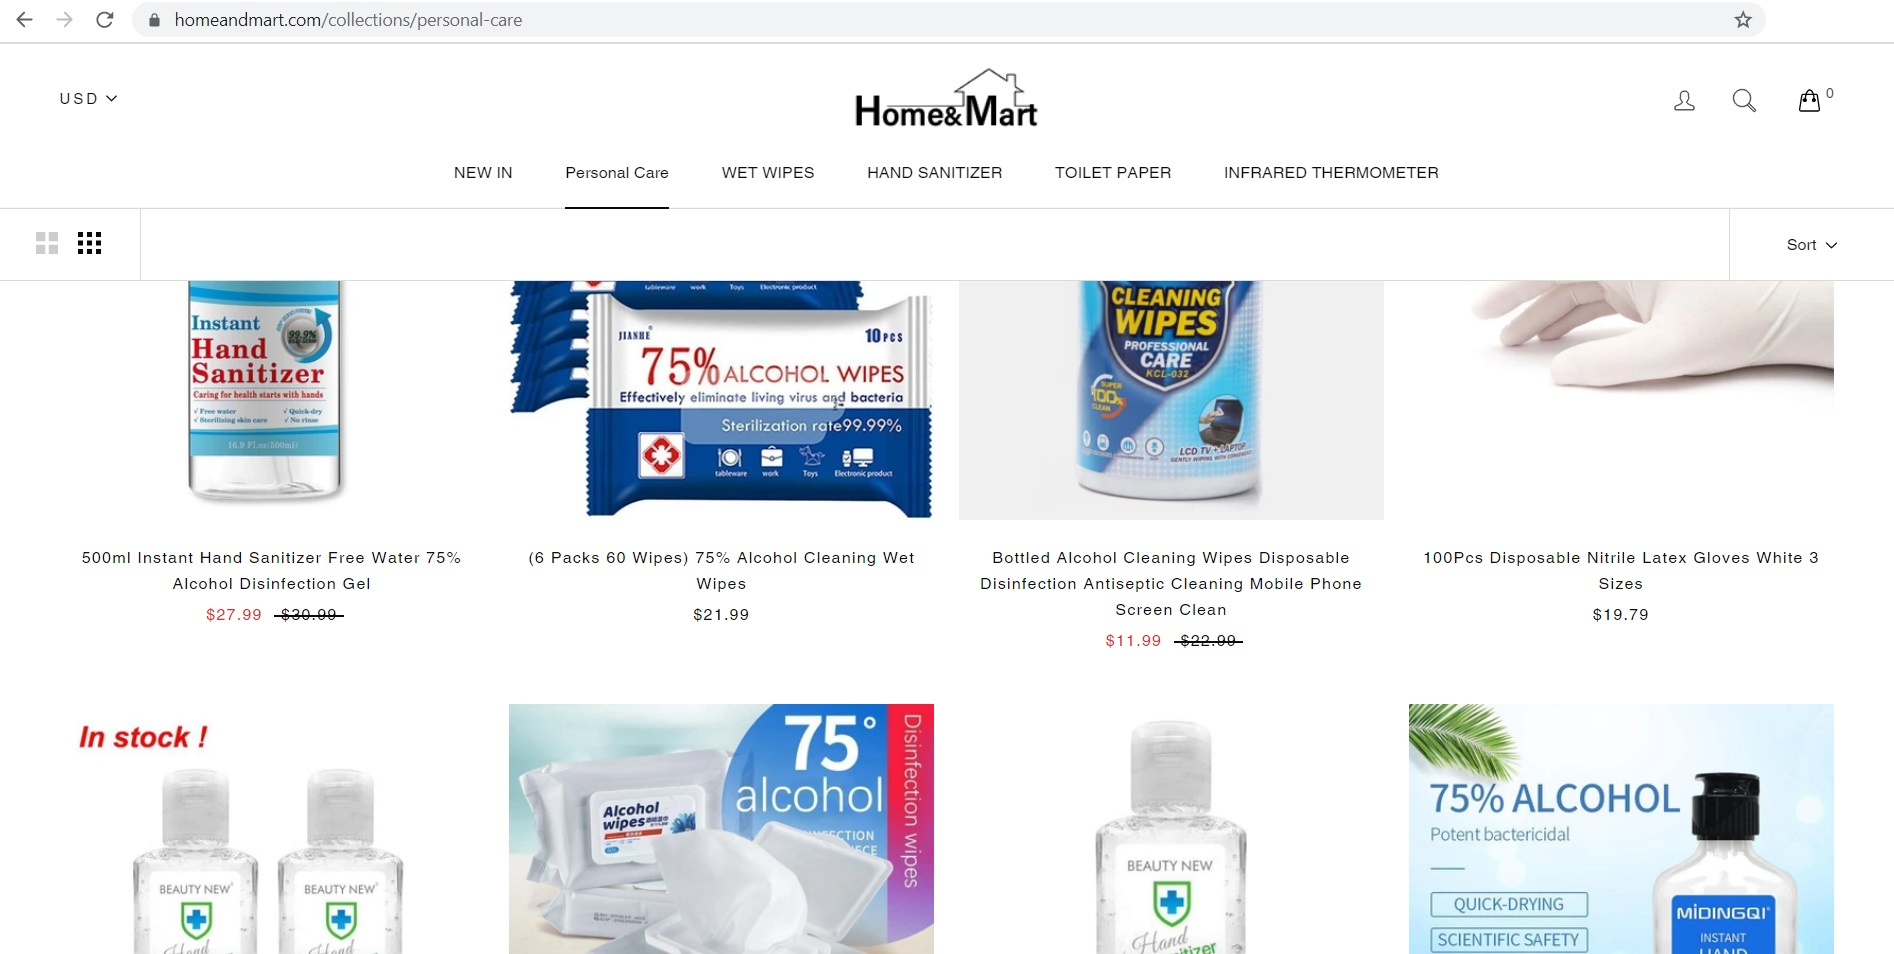 Home and Mart located at homeandmart.com